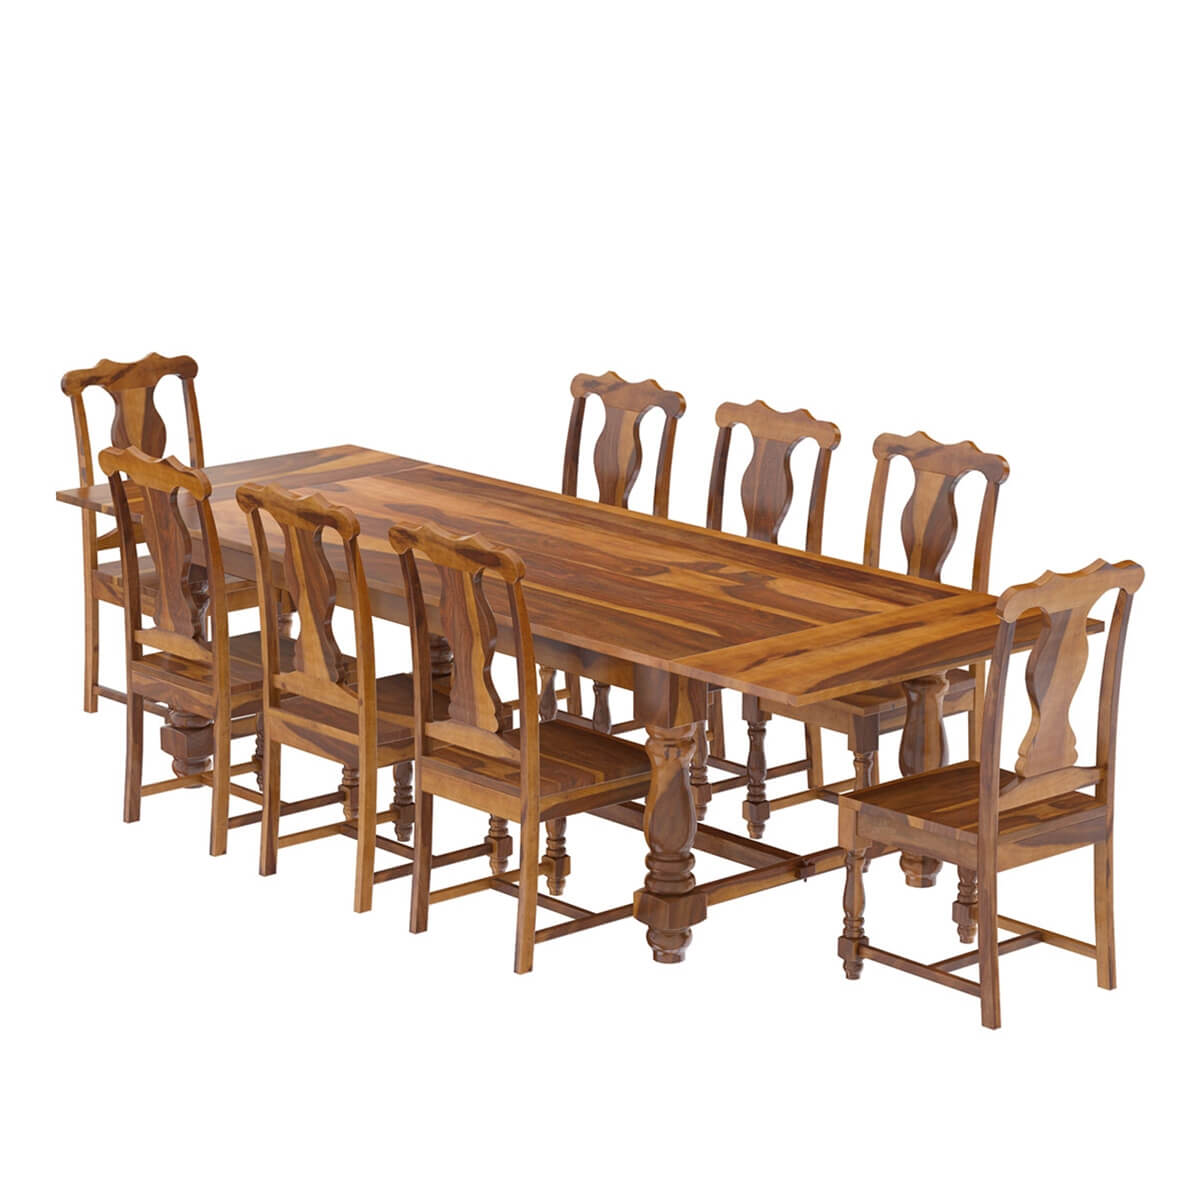 Rustic solid wood dining table chair set furniture w for Solid wood dining table sets